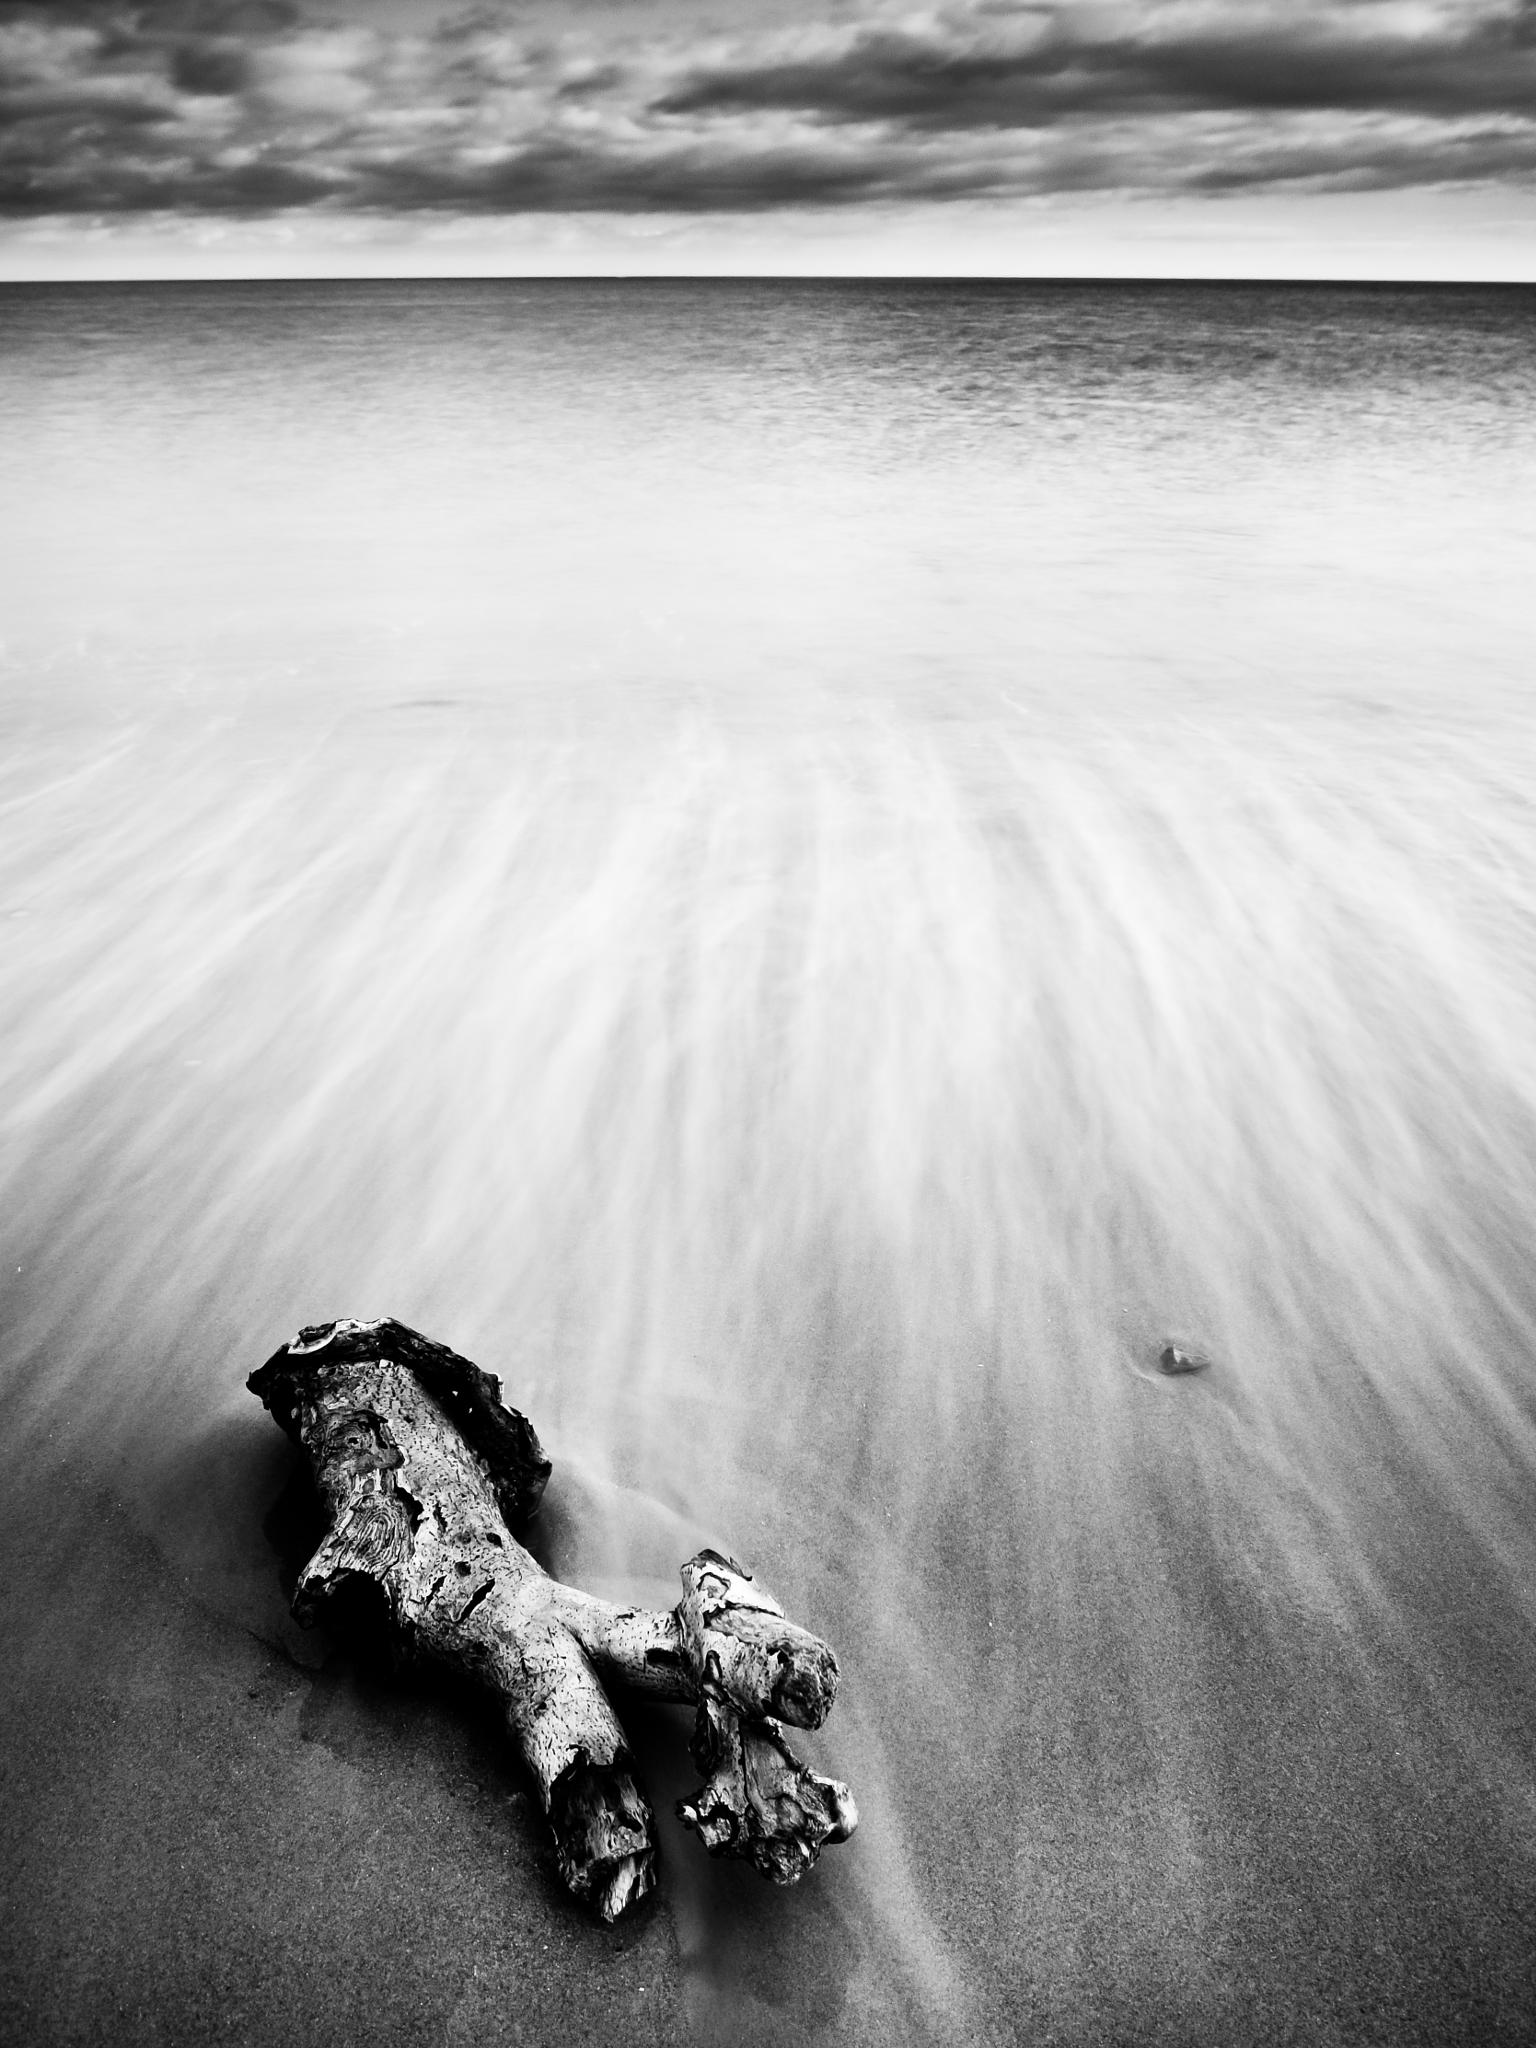 Washed up! by Peter Edwardo Vicente.